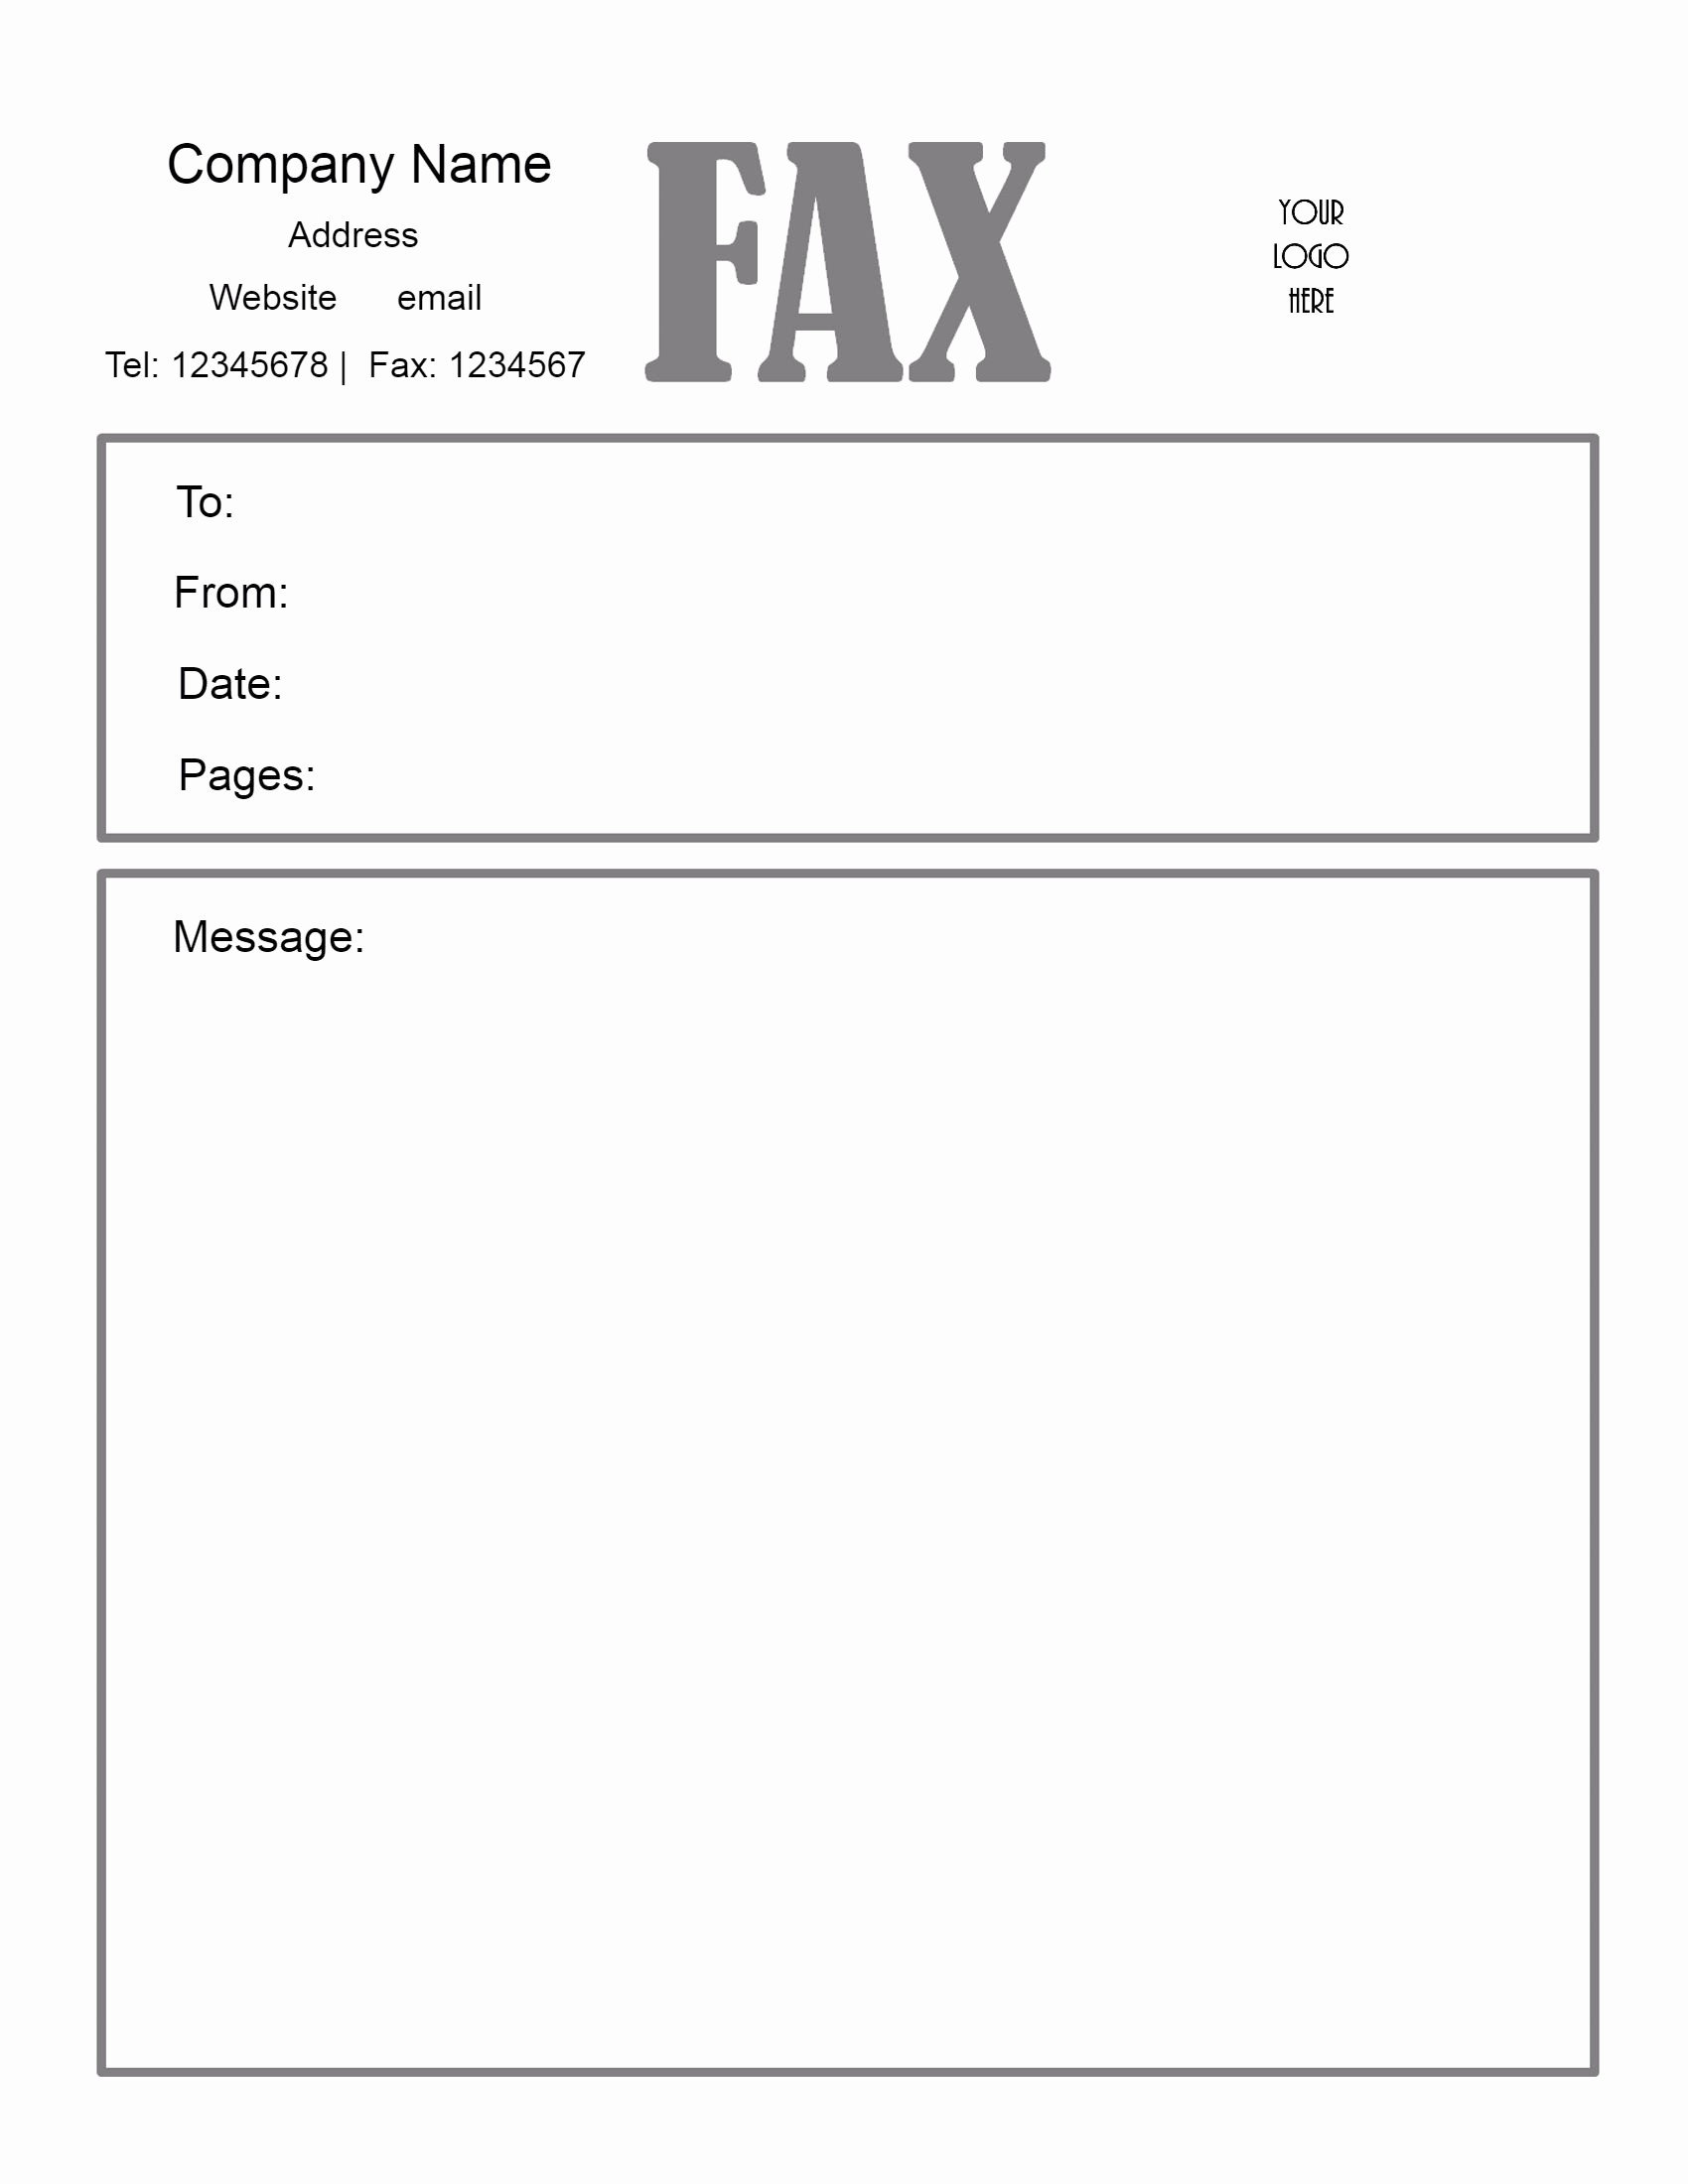 Make A Fax Cover Sheet Beautiful Free Fax Cover Sheet Template